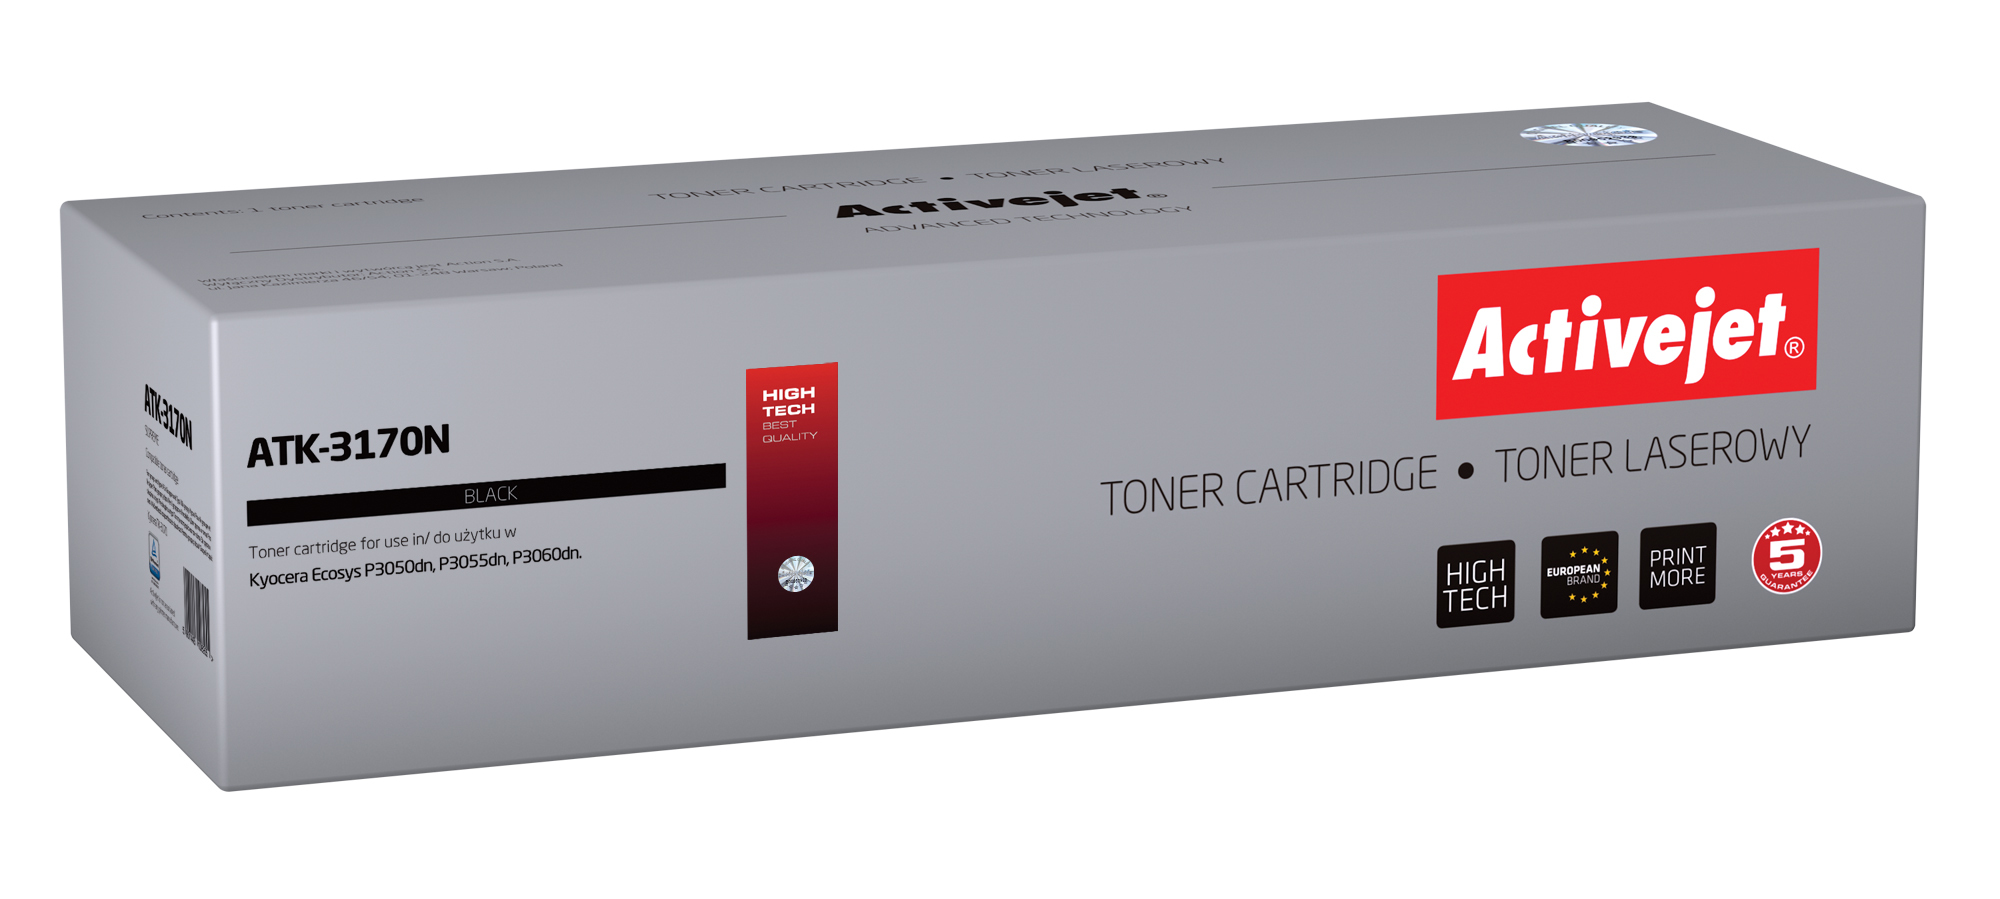 Activejet toner do Kyocera TK-3170 new ATK-3170N